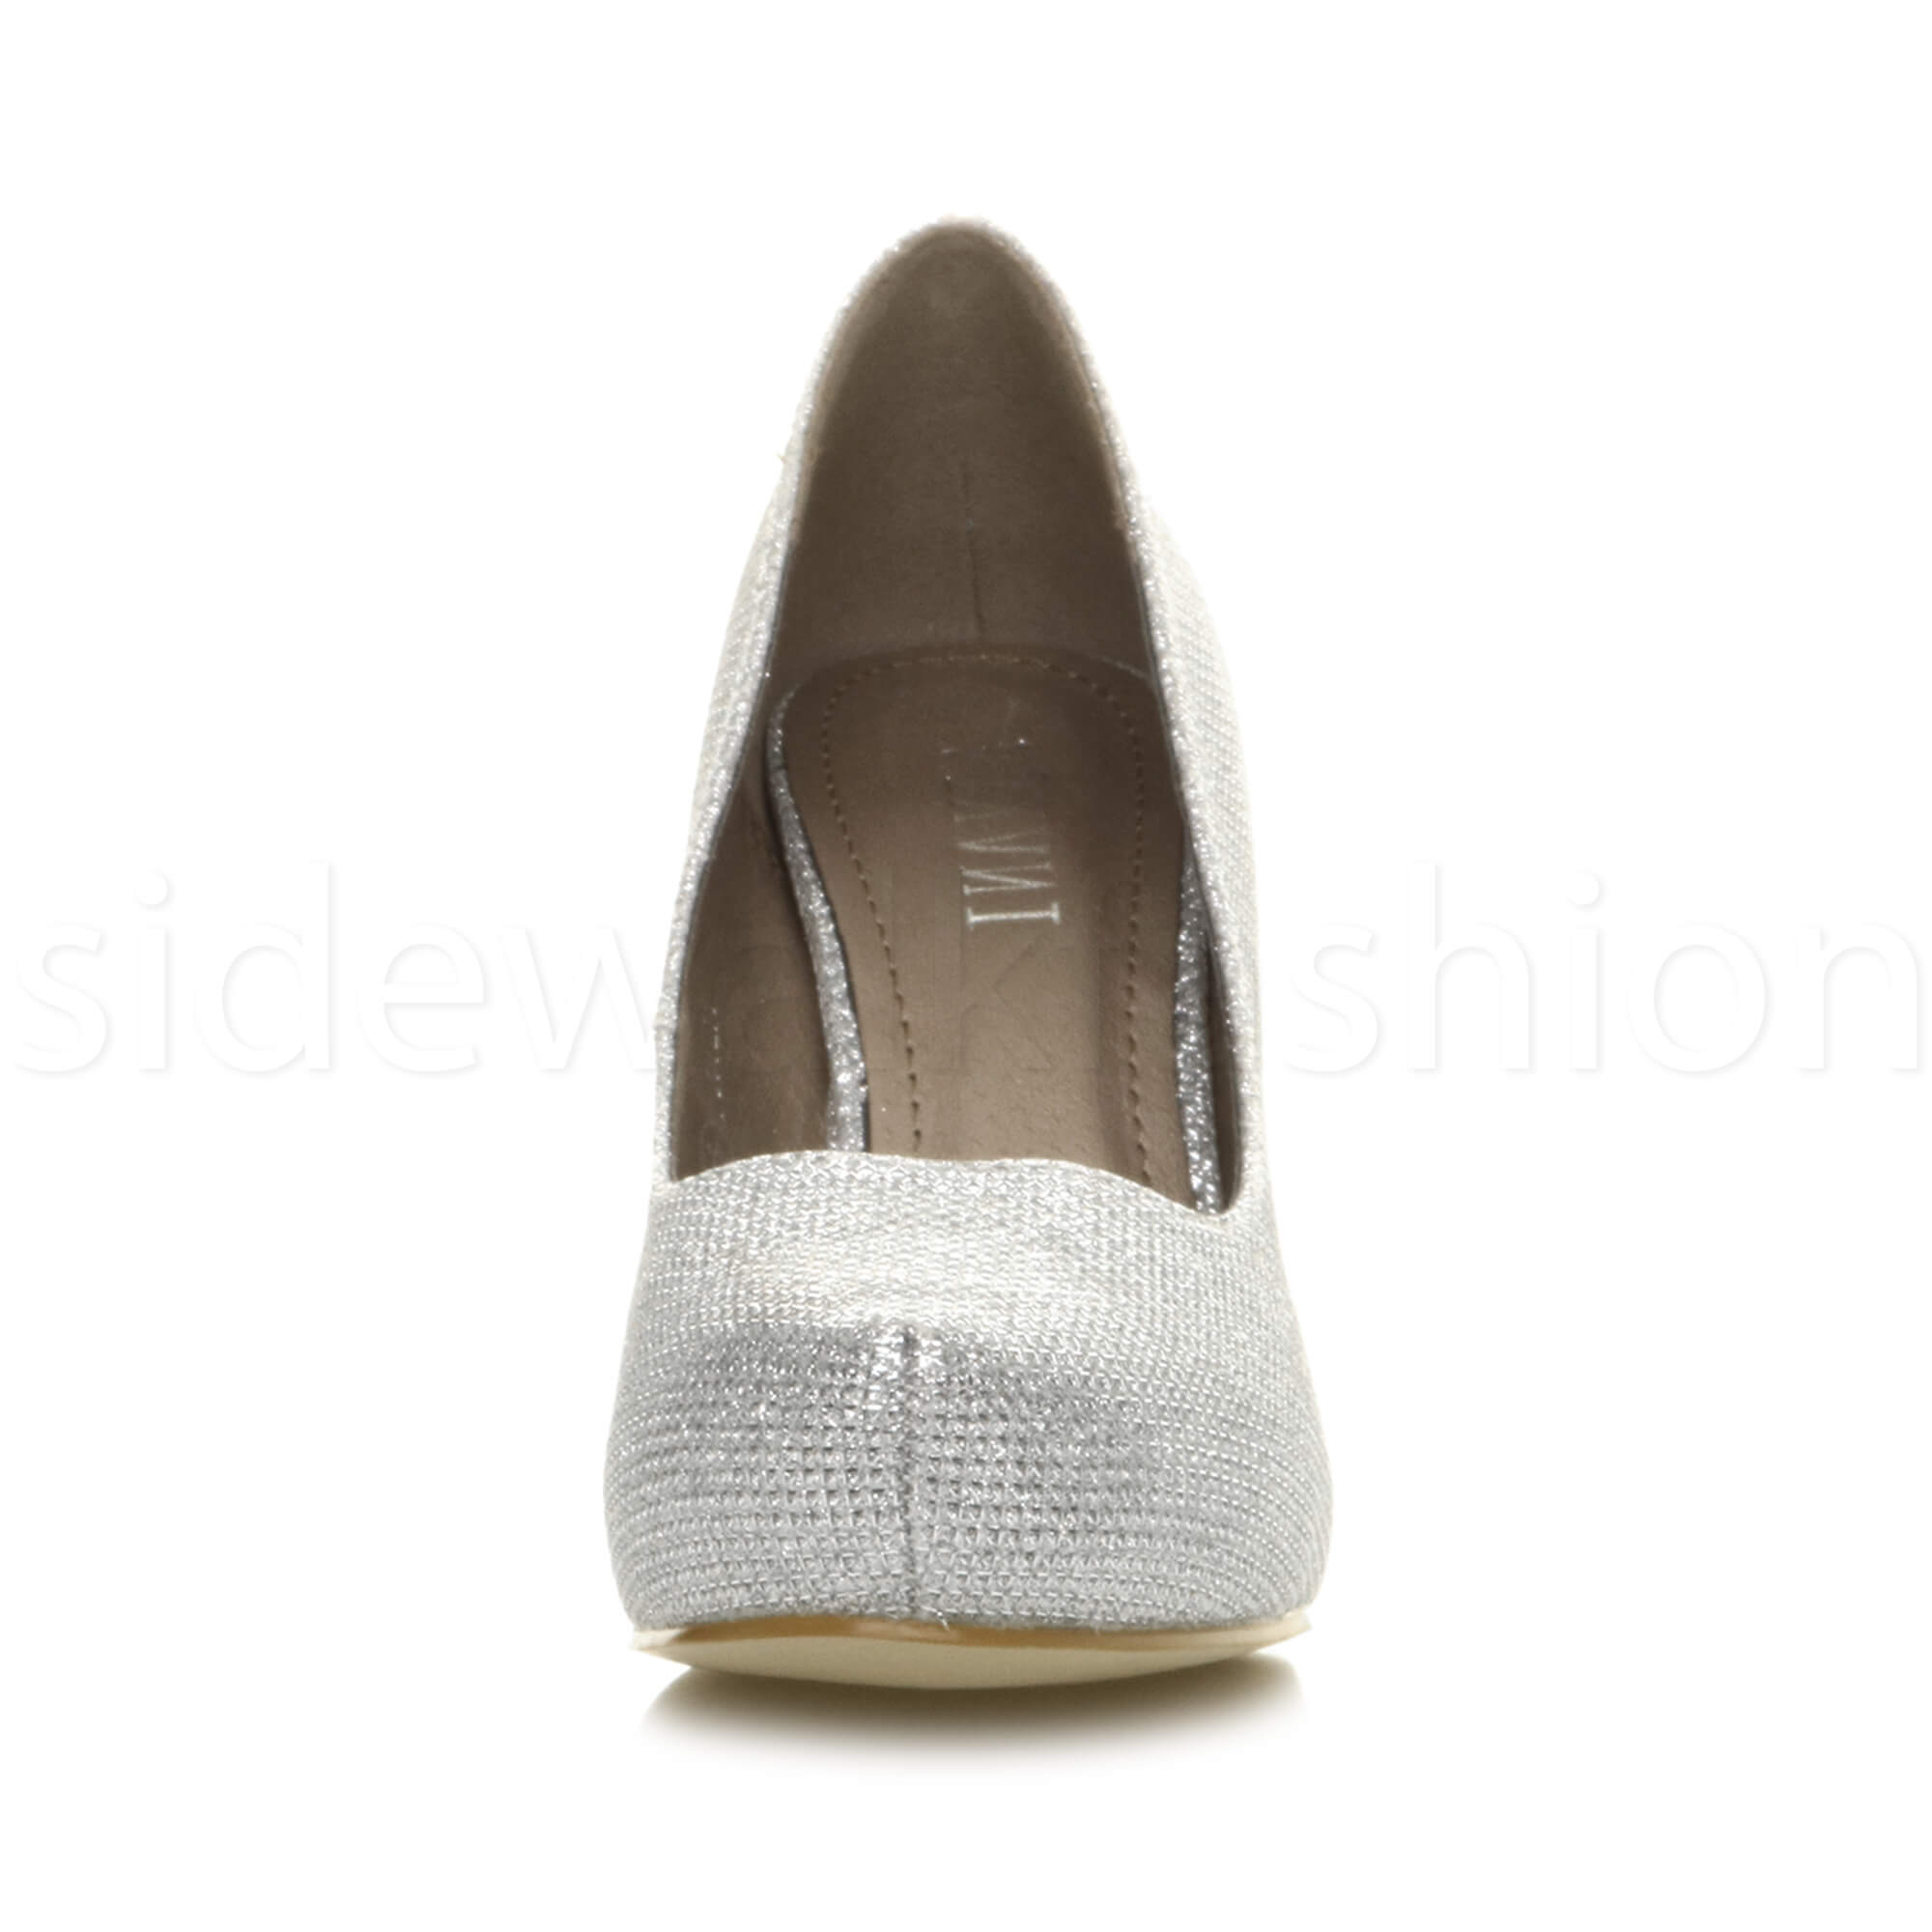 Womens-ladies-low-mid-heel-concealed-platform-work-party-court-shoes-pumps-size thumbnail 130